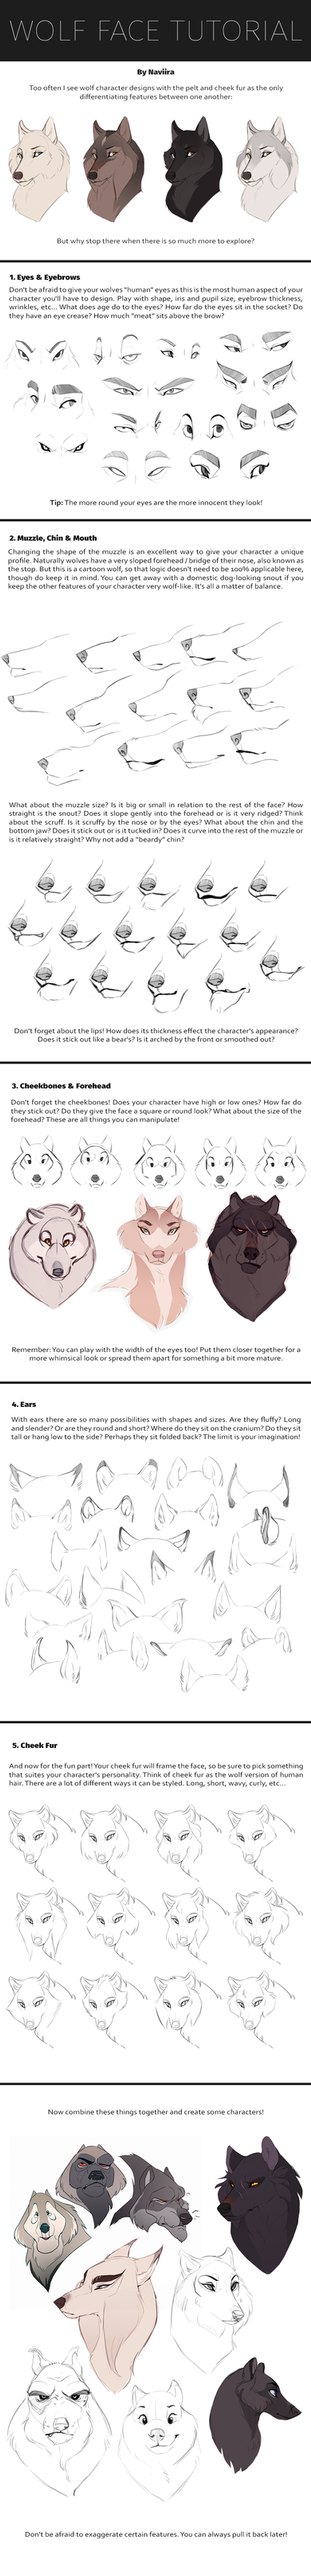 Wolf Face Tutorial by Naviira